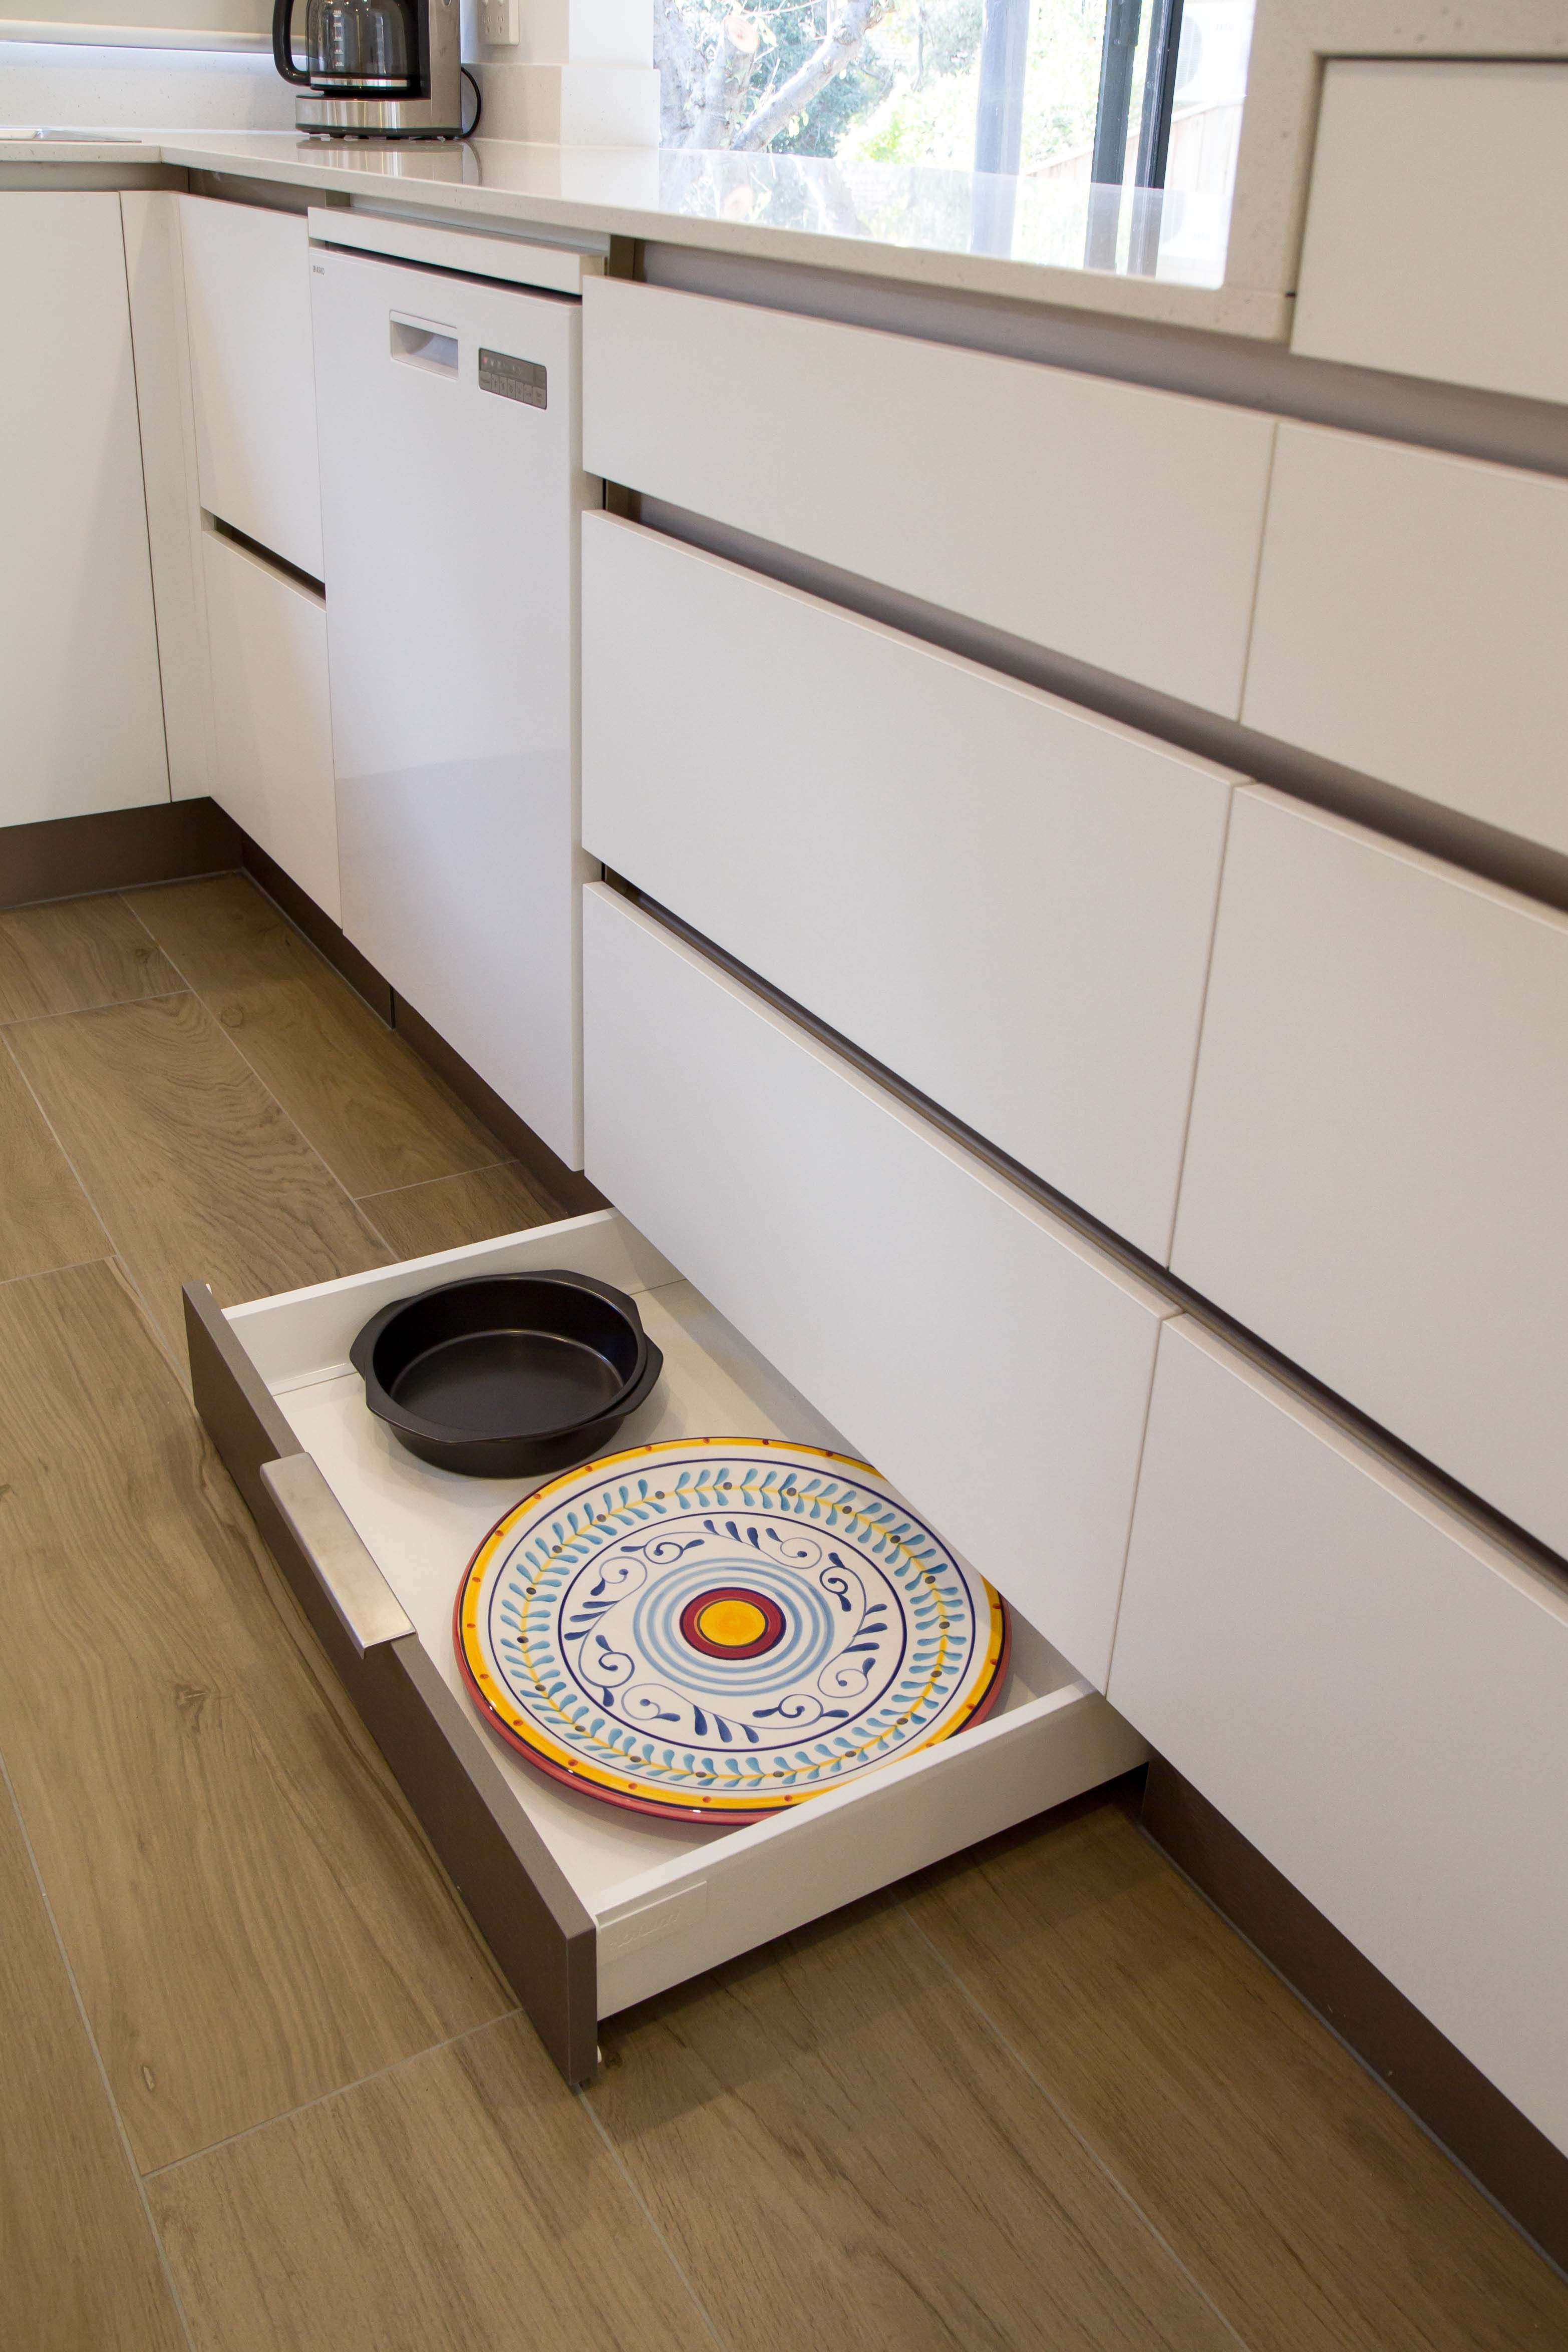 Kickboard drawers provide the perfect storage for platters and